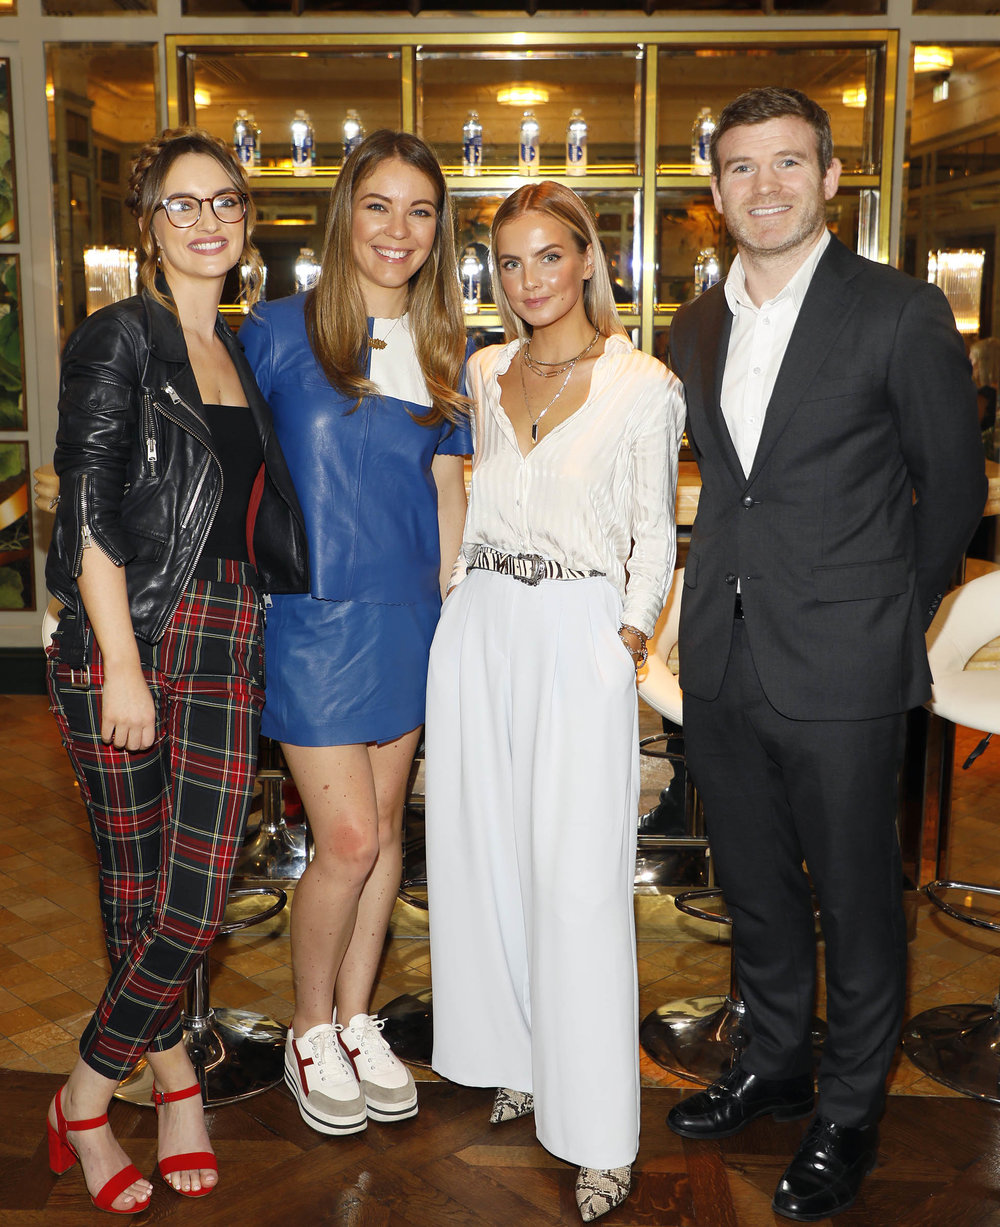 Caroline Foran , Emma Manley, Joanna Cooper and Gordon D'Arcy at the launch of Smartwater which was held at the Ivy .photo Kieran Harnett